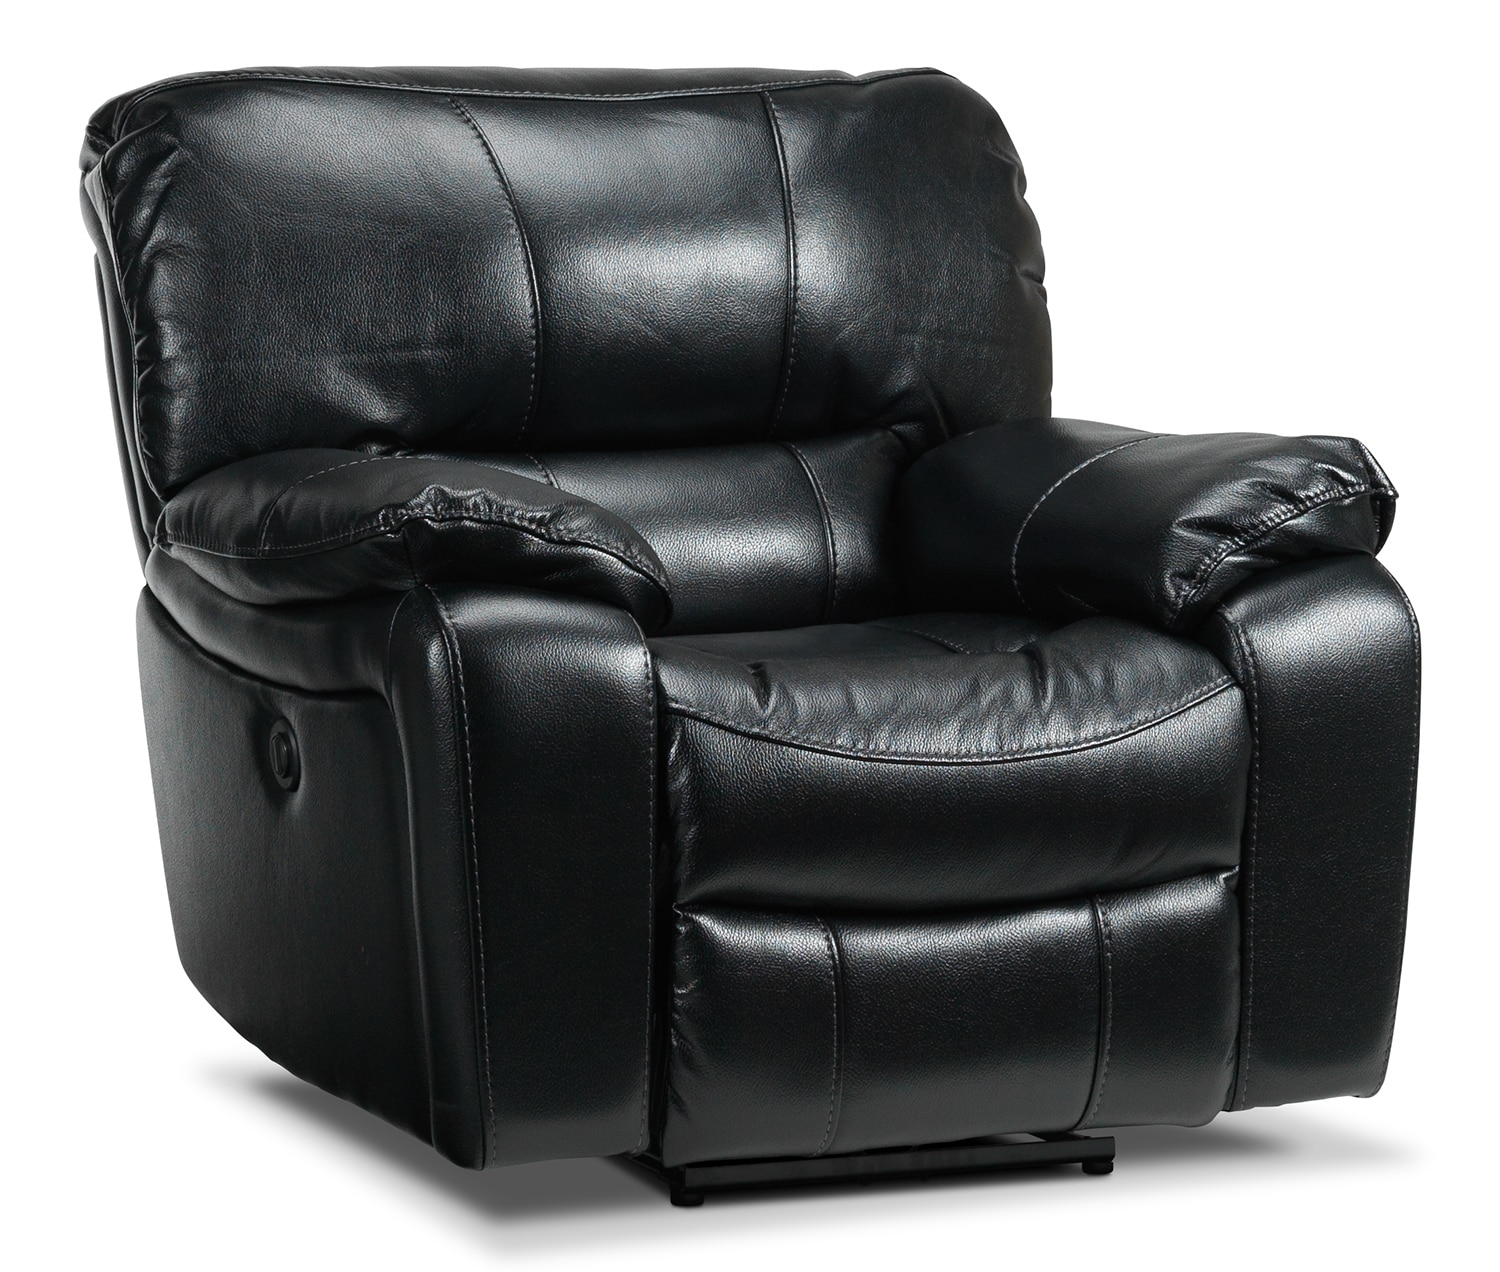 Santorini Power Recliner - Black